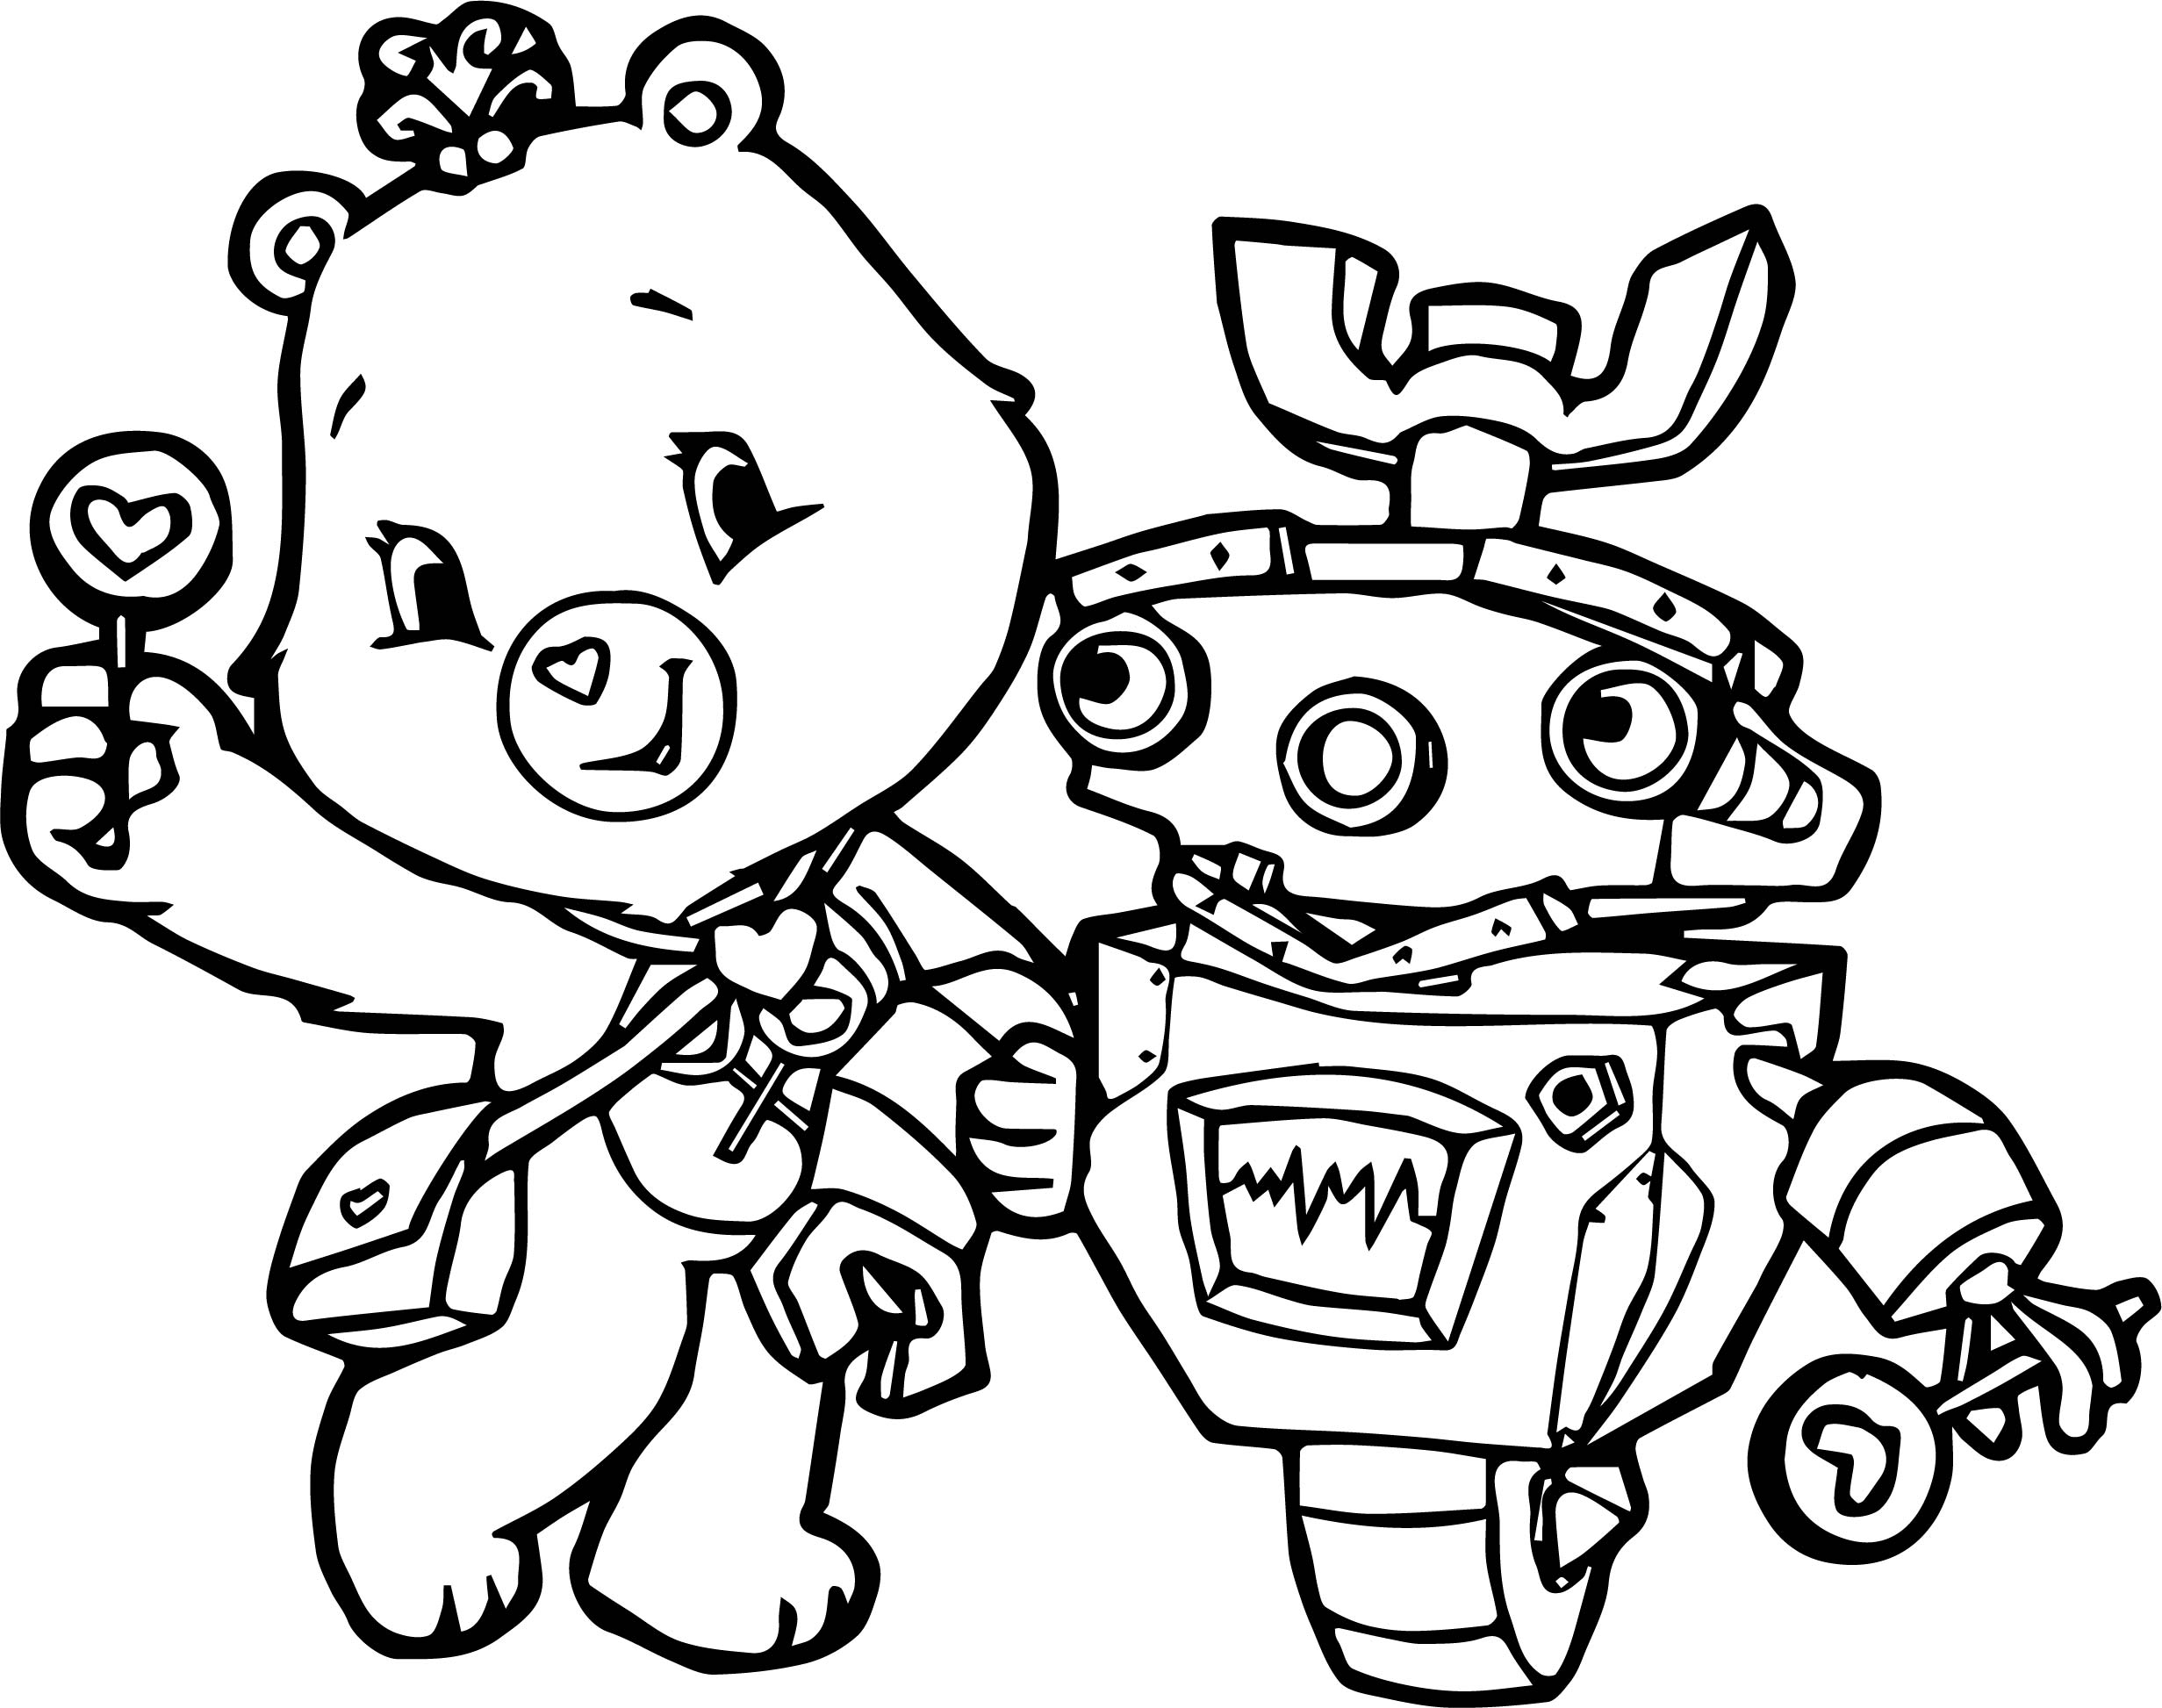 Robot care bears adventures in care a lot coloring page for Care bears coloring pages